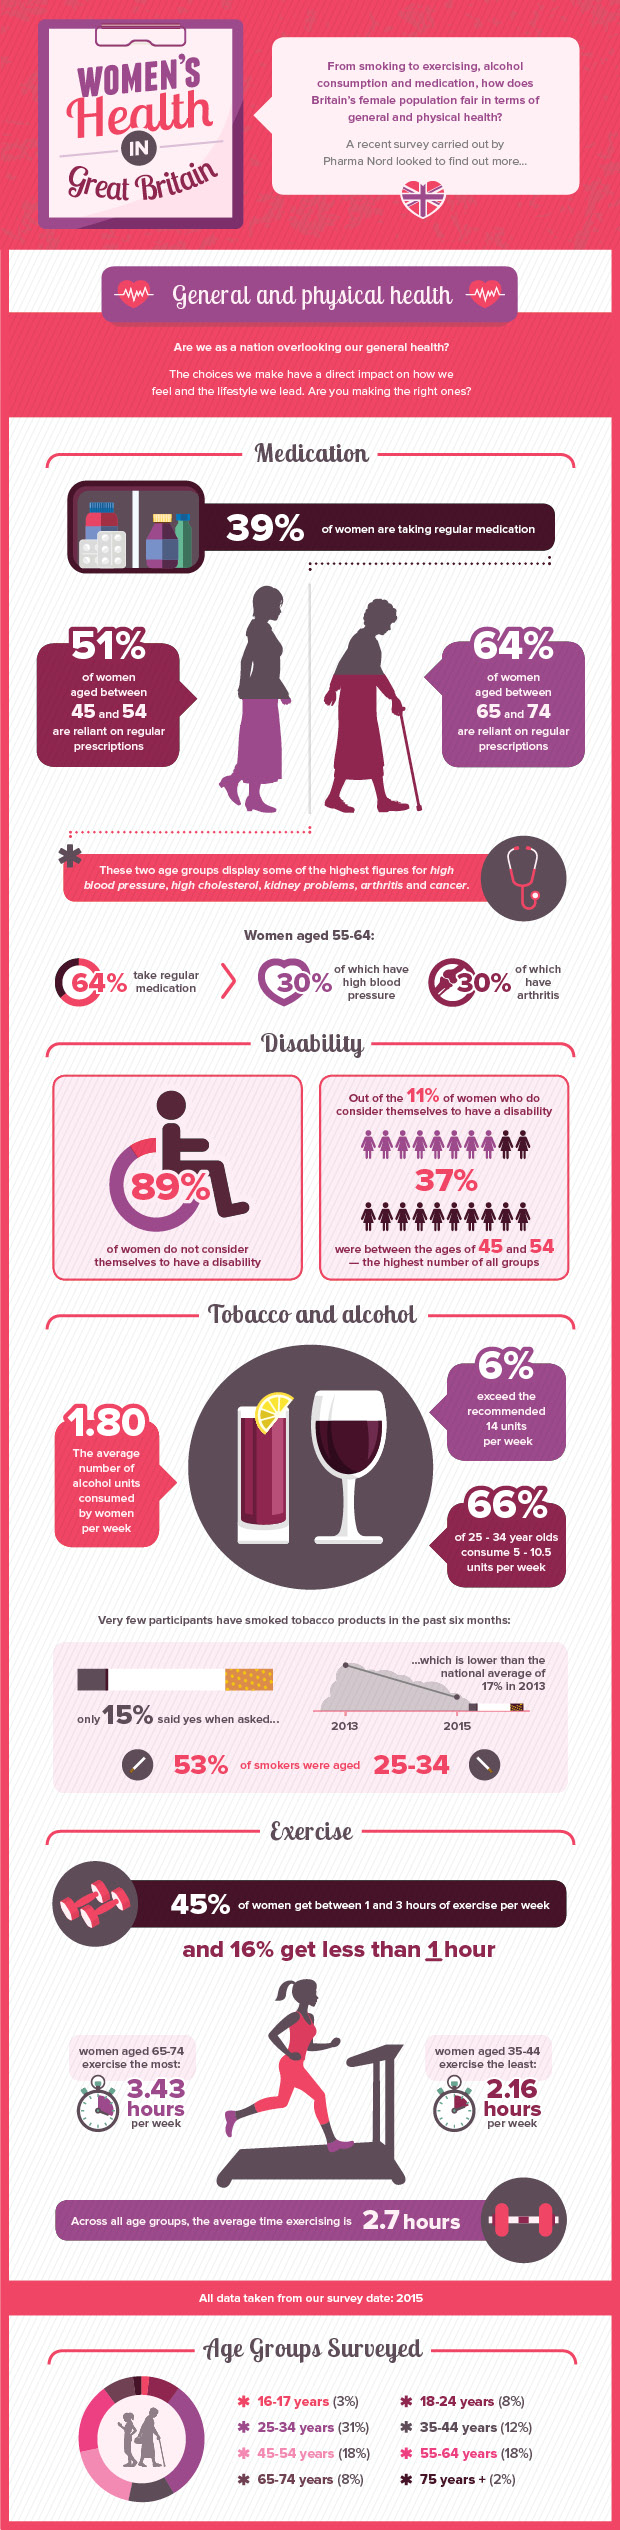 Womens health infographic- general and physical health